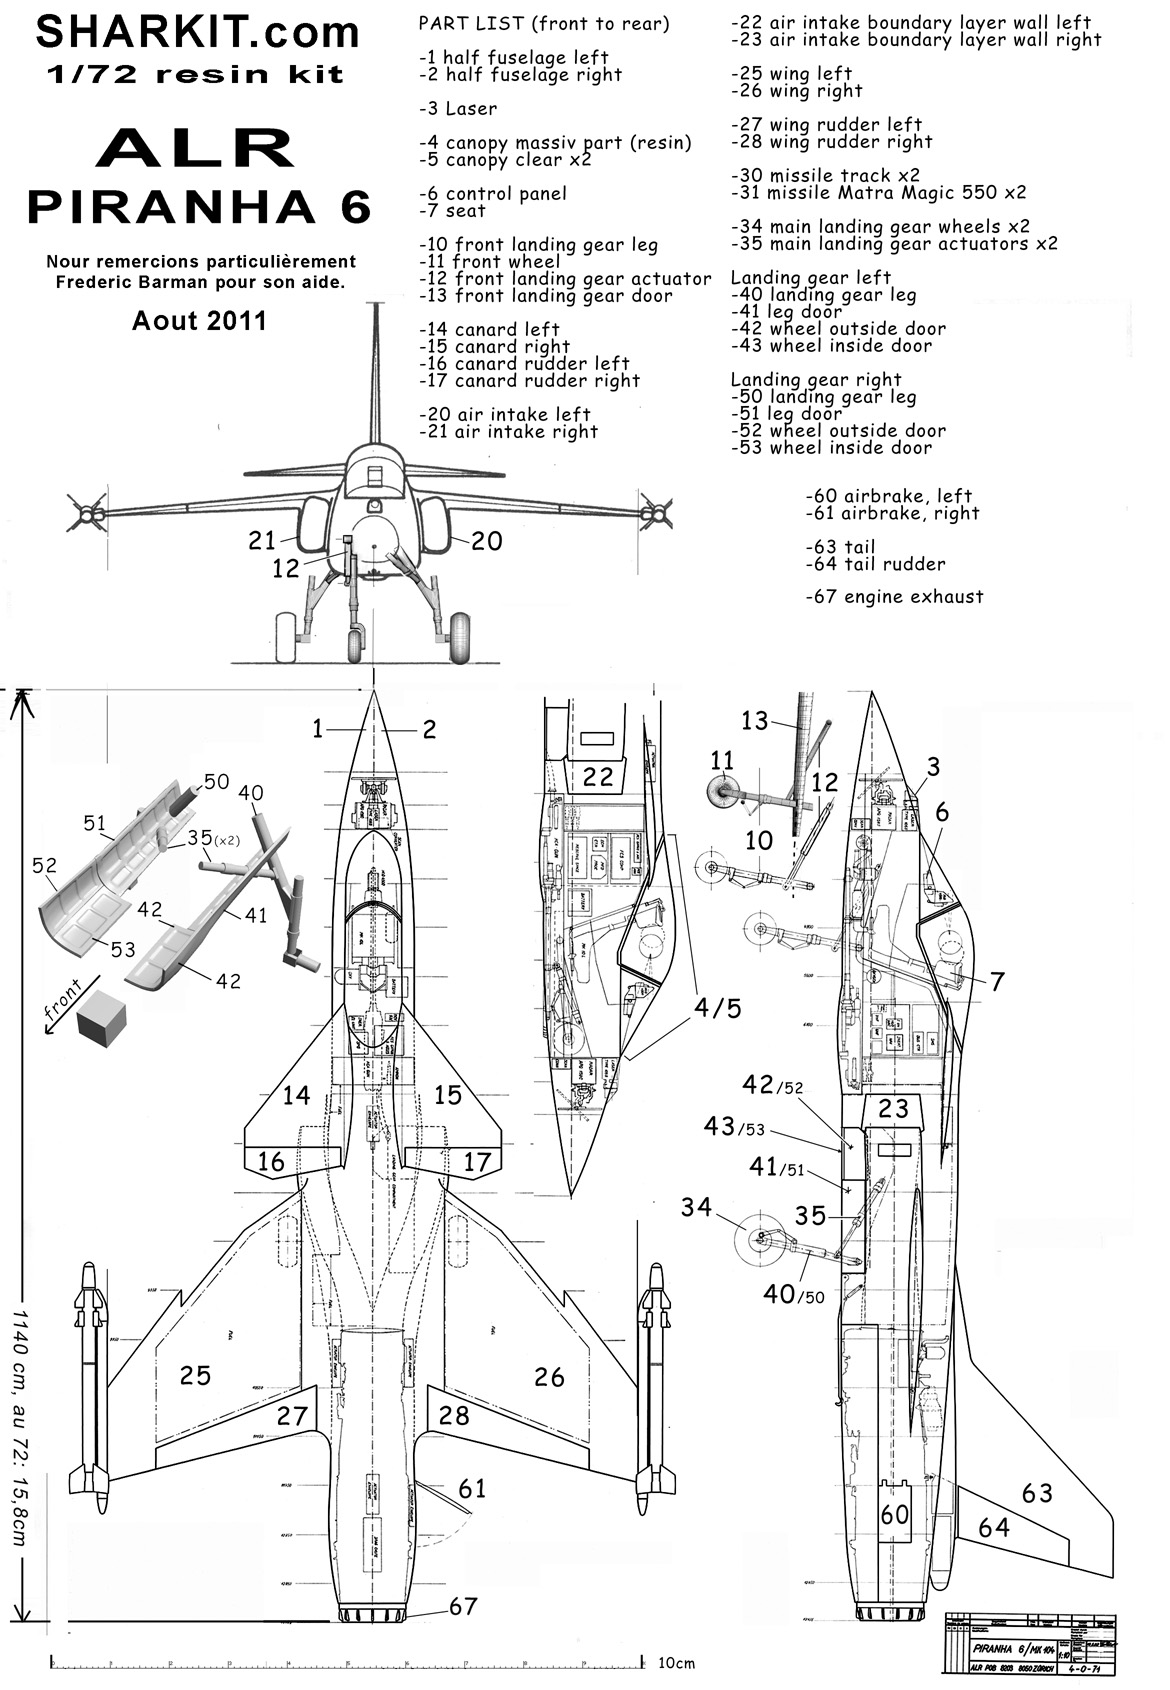 Air Superiority Fighter Proposal 6 Defense Issues Airsuperiority Weekly Digital Timer Circuit Likelike